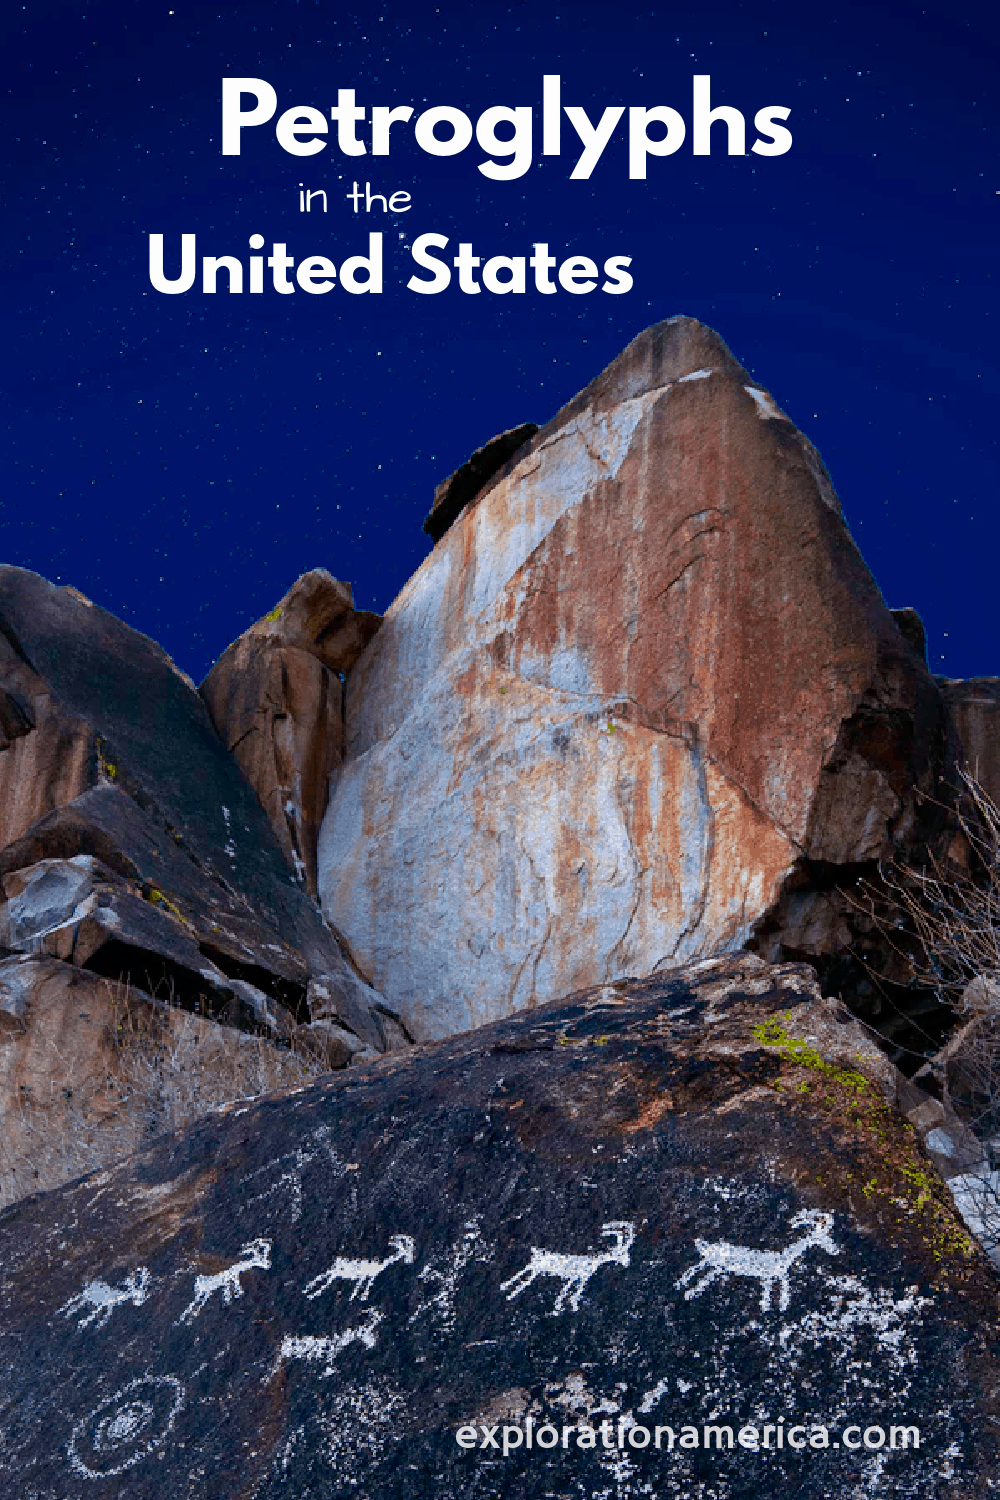 petroglyphs in the United States